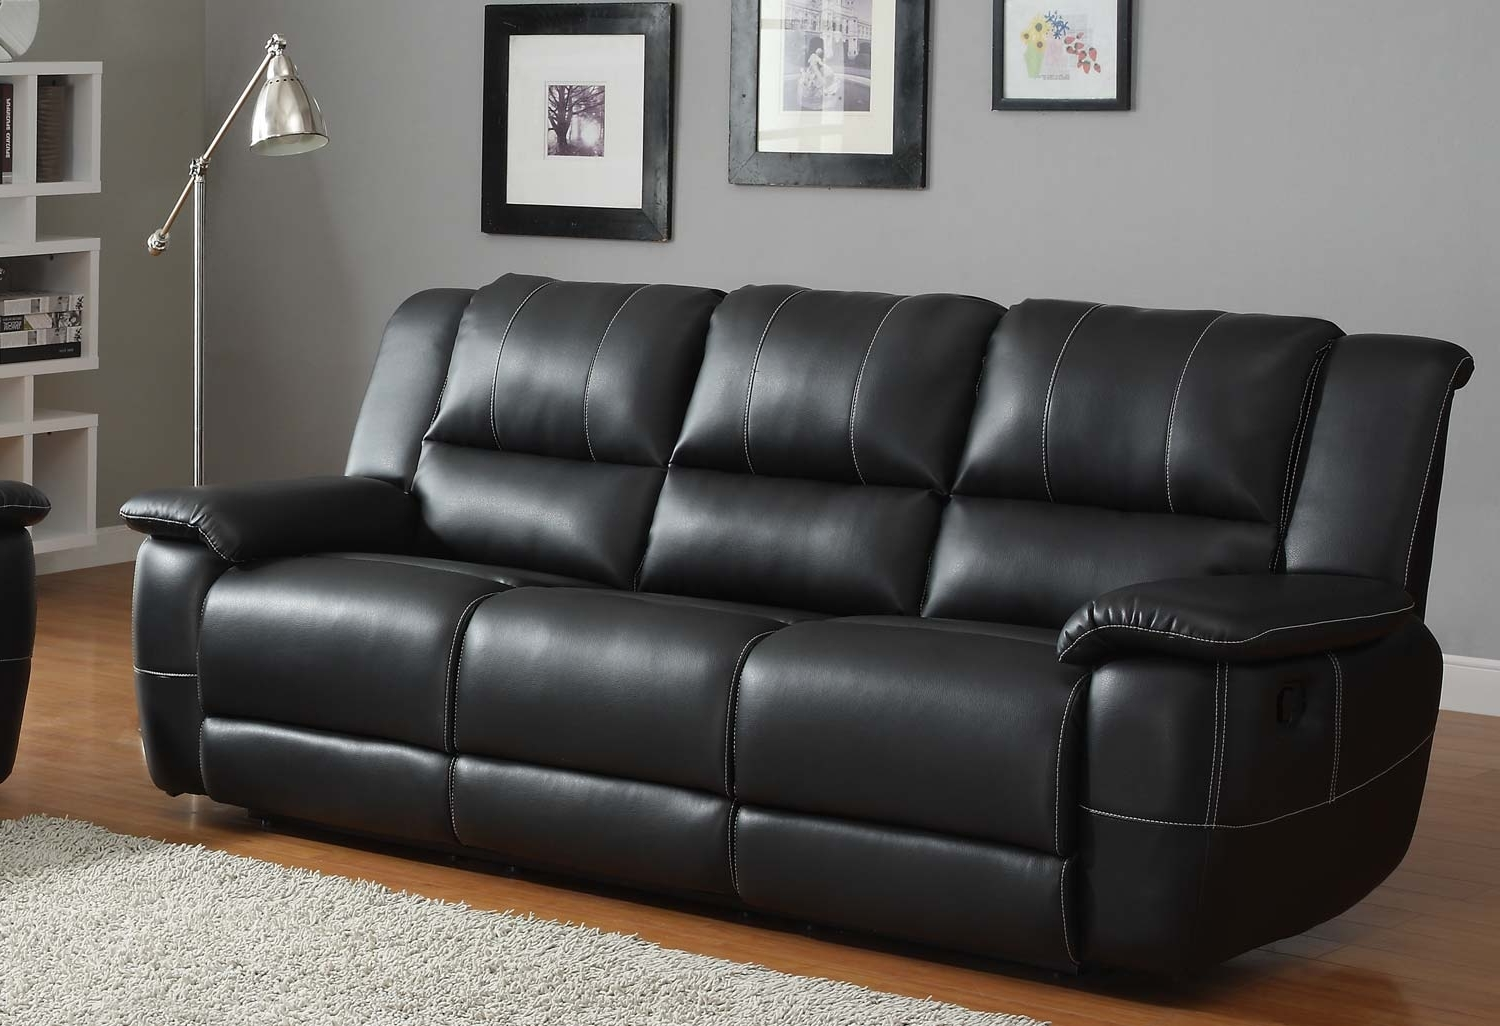 Black Leather Sofa White Leather Contemporary Sectional Sofa With Regard To Current Cheap Black Sofas (View 4 of 20)